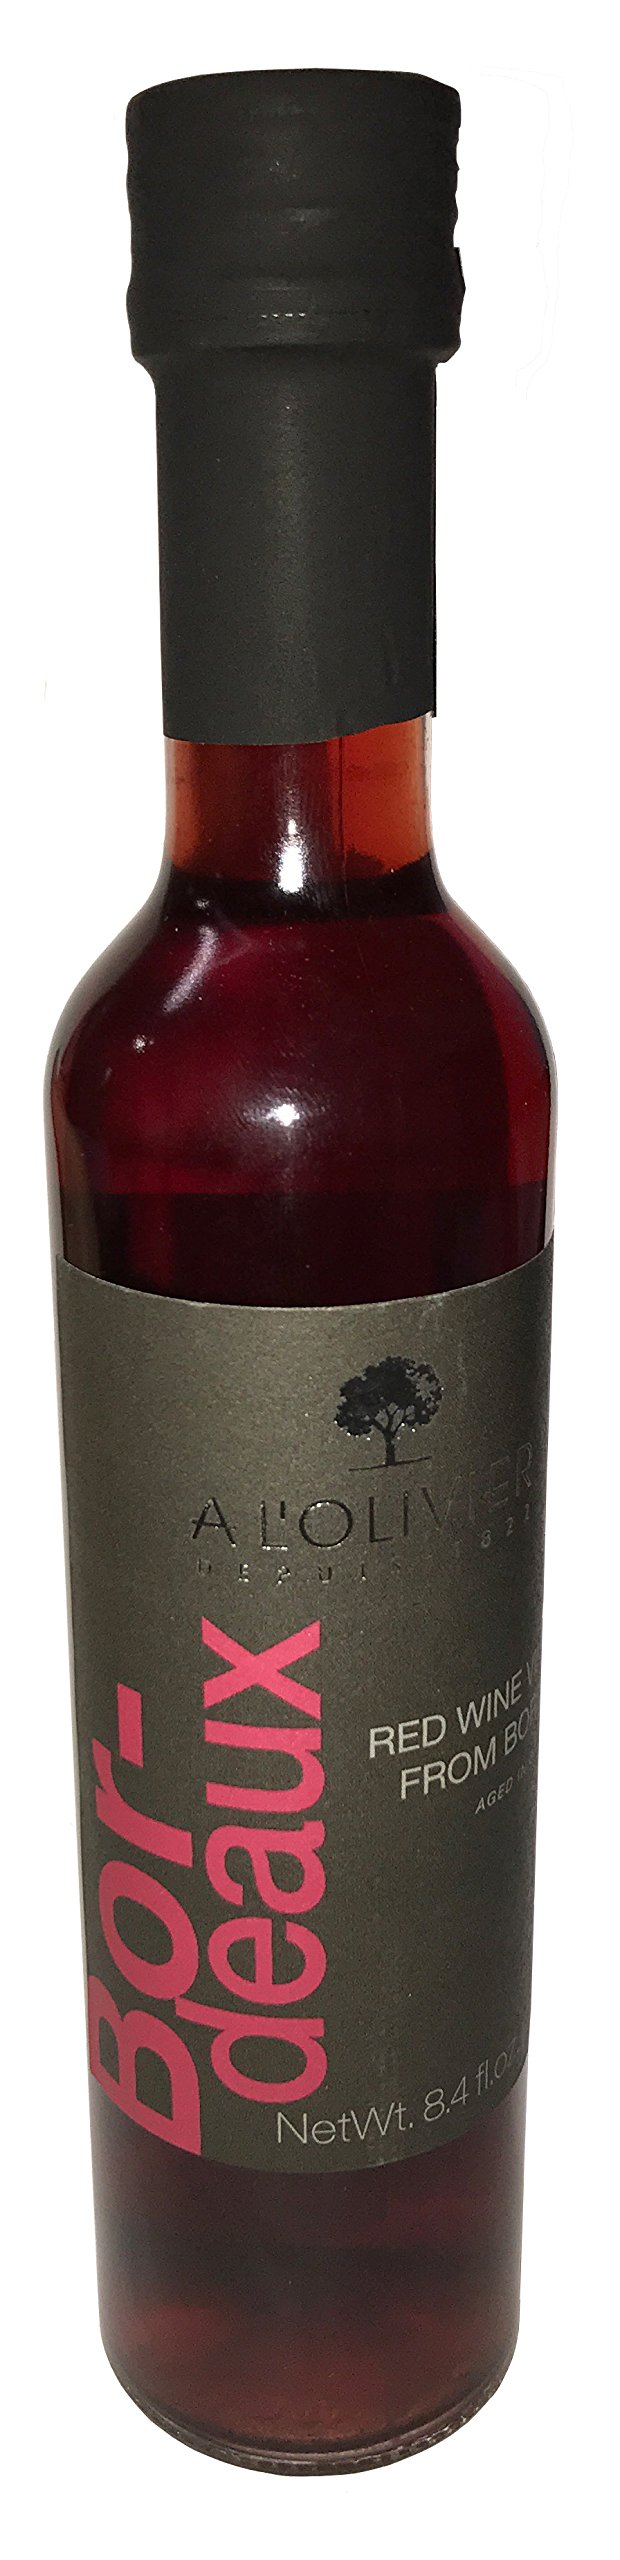 A Lolivier Vinegar Red Wine Bordeaux, 250 ml